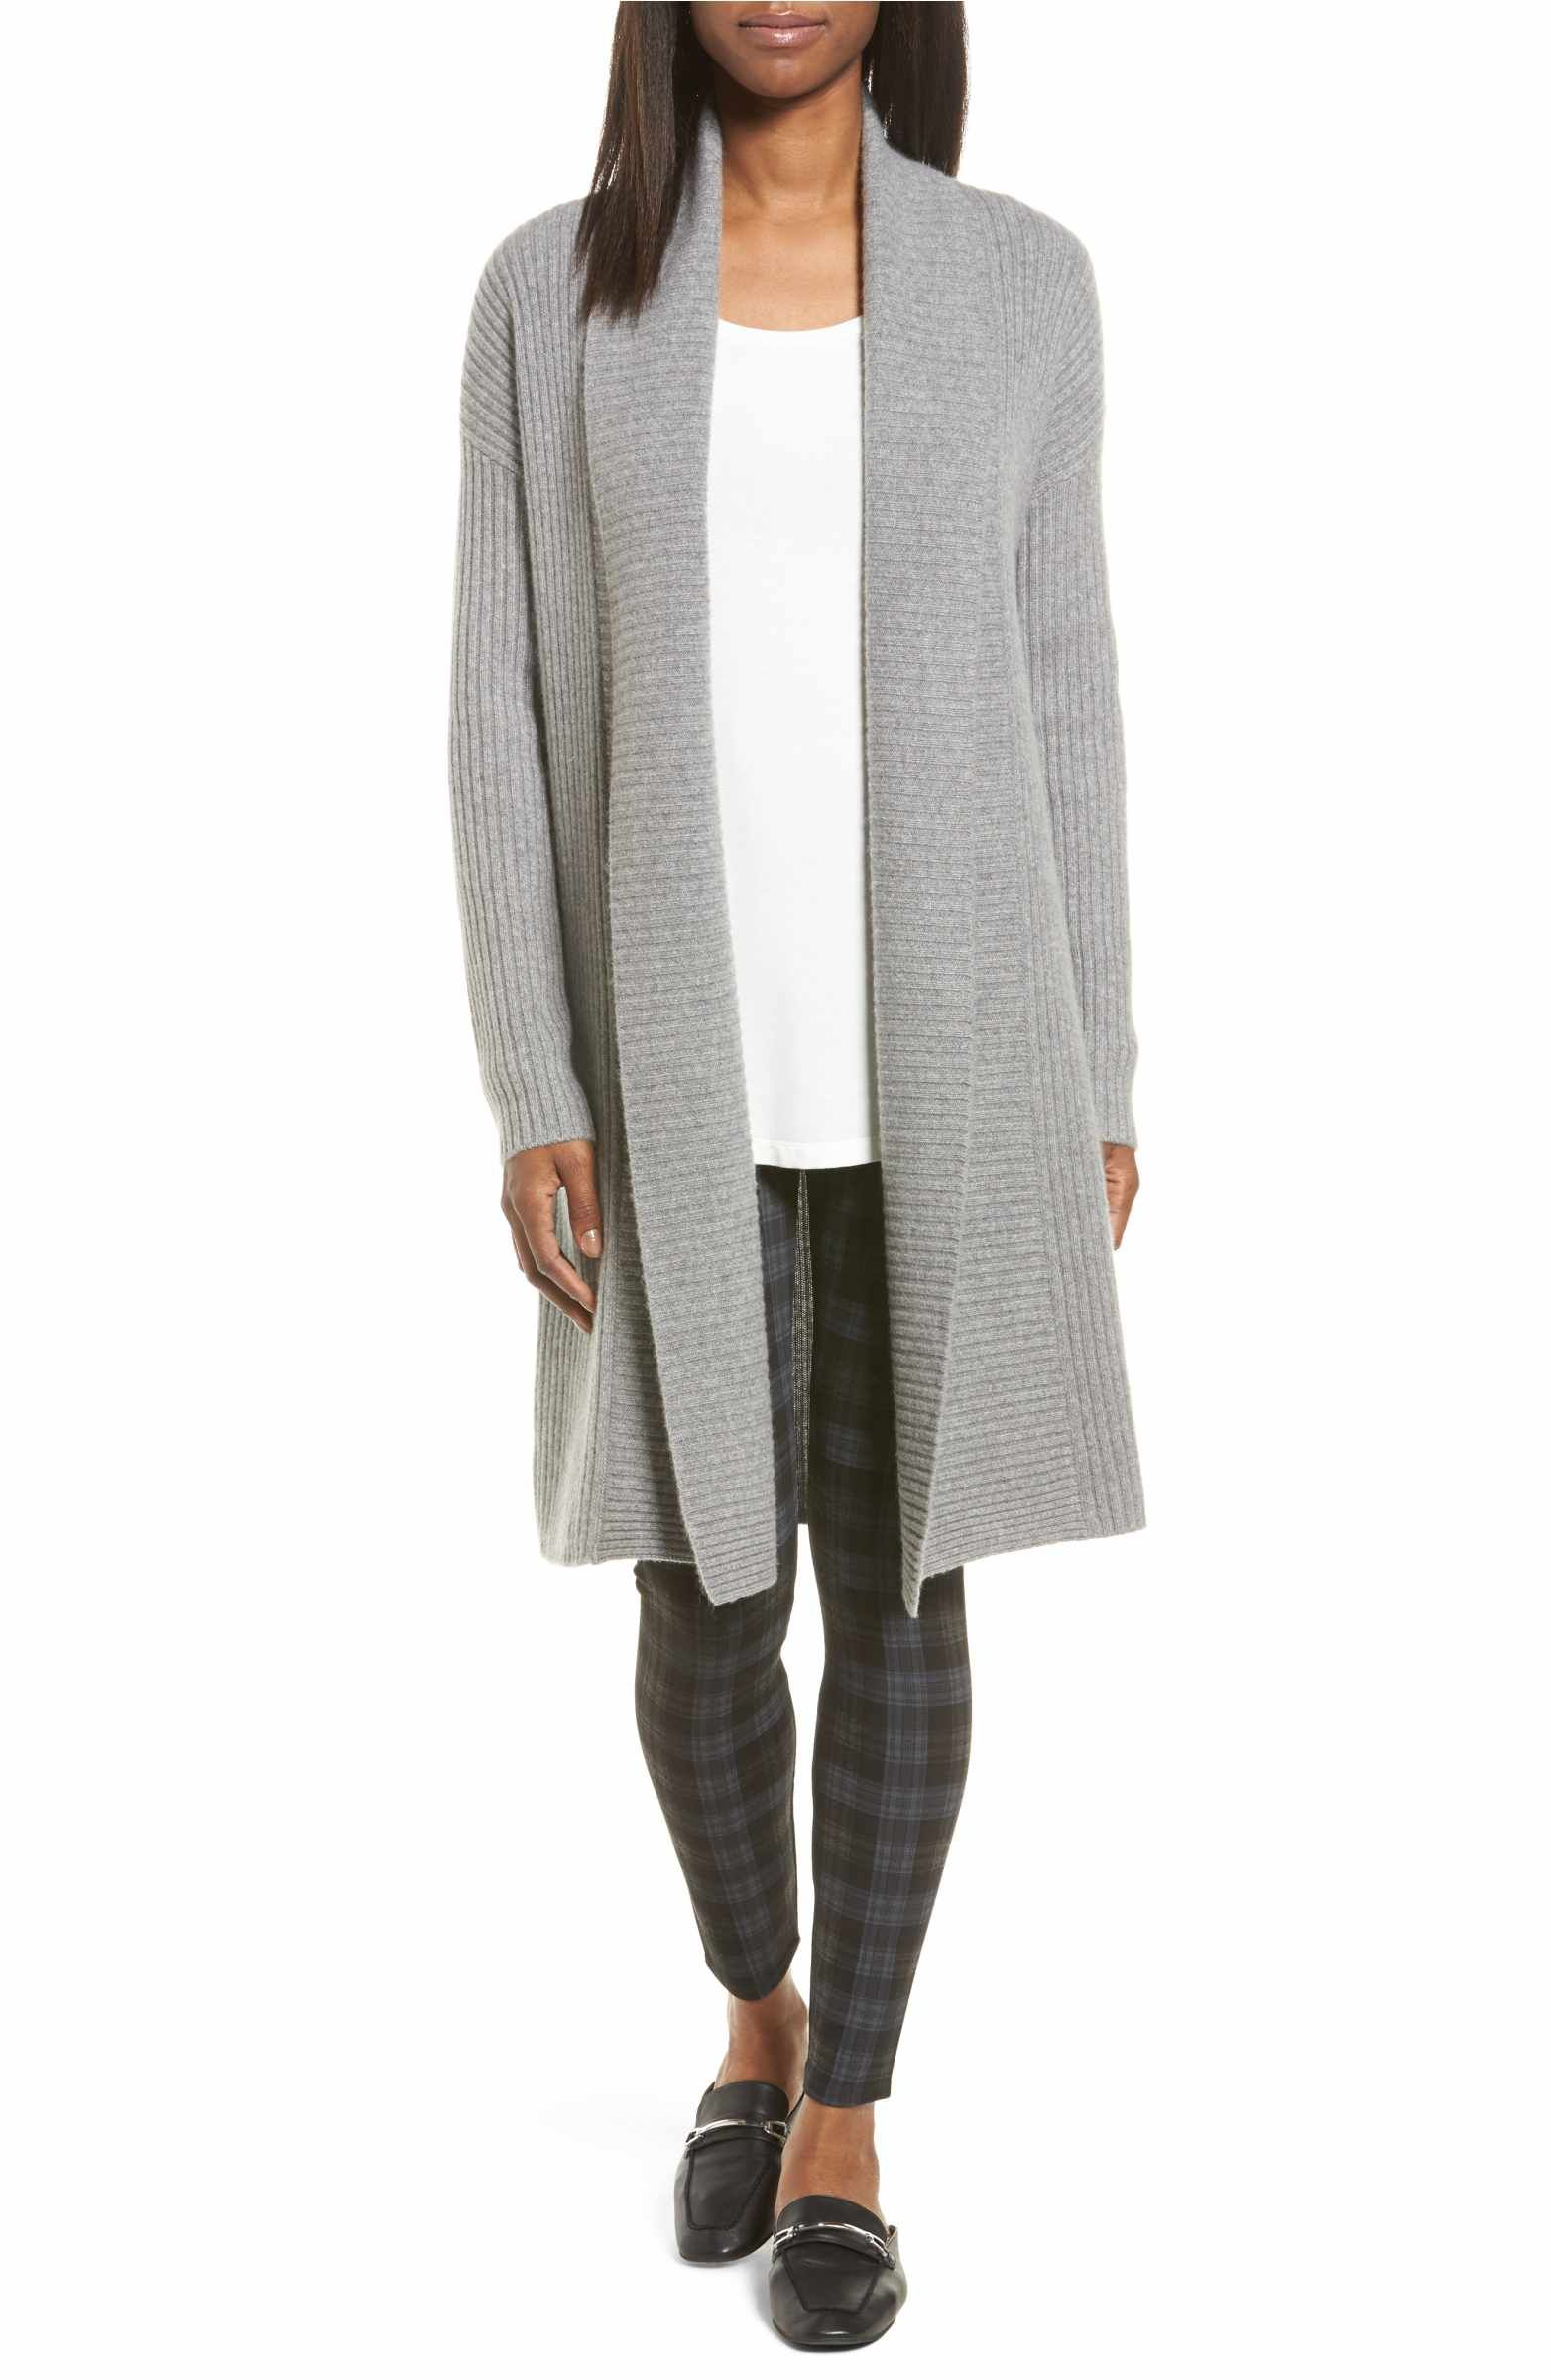 Long Ribbed Cashmere Cardigan | Cashmere, Nordstrom anniversary ...